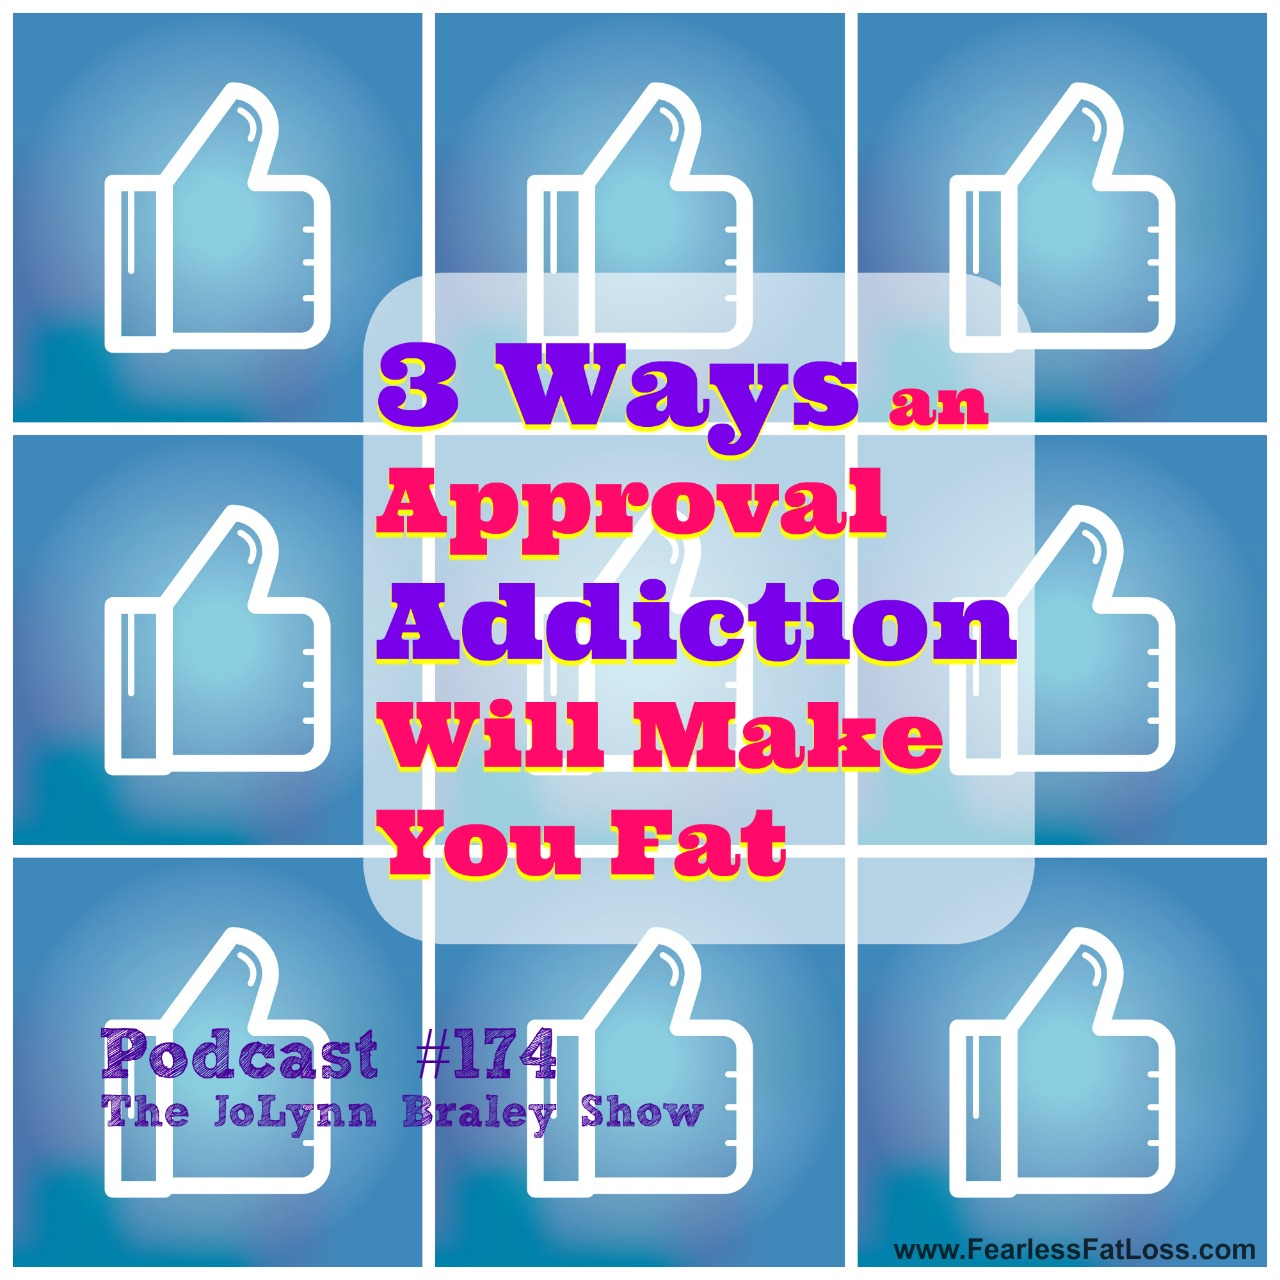 3 Ways An Approval Addiction Will Make You Fat | FearlessFatLoss.com | Permanent Weight Loss Coach JoLynn Braley | Emotional Eating Help